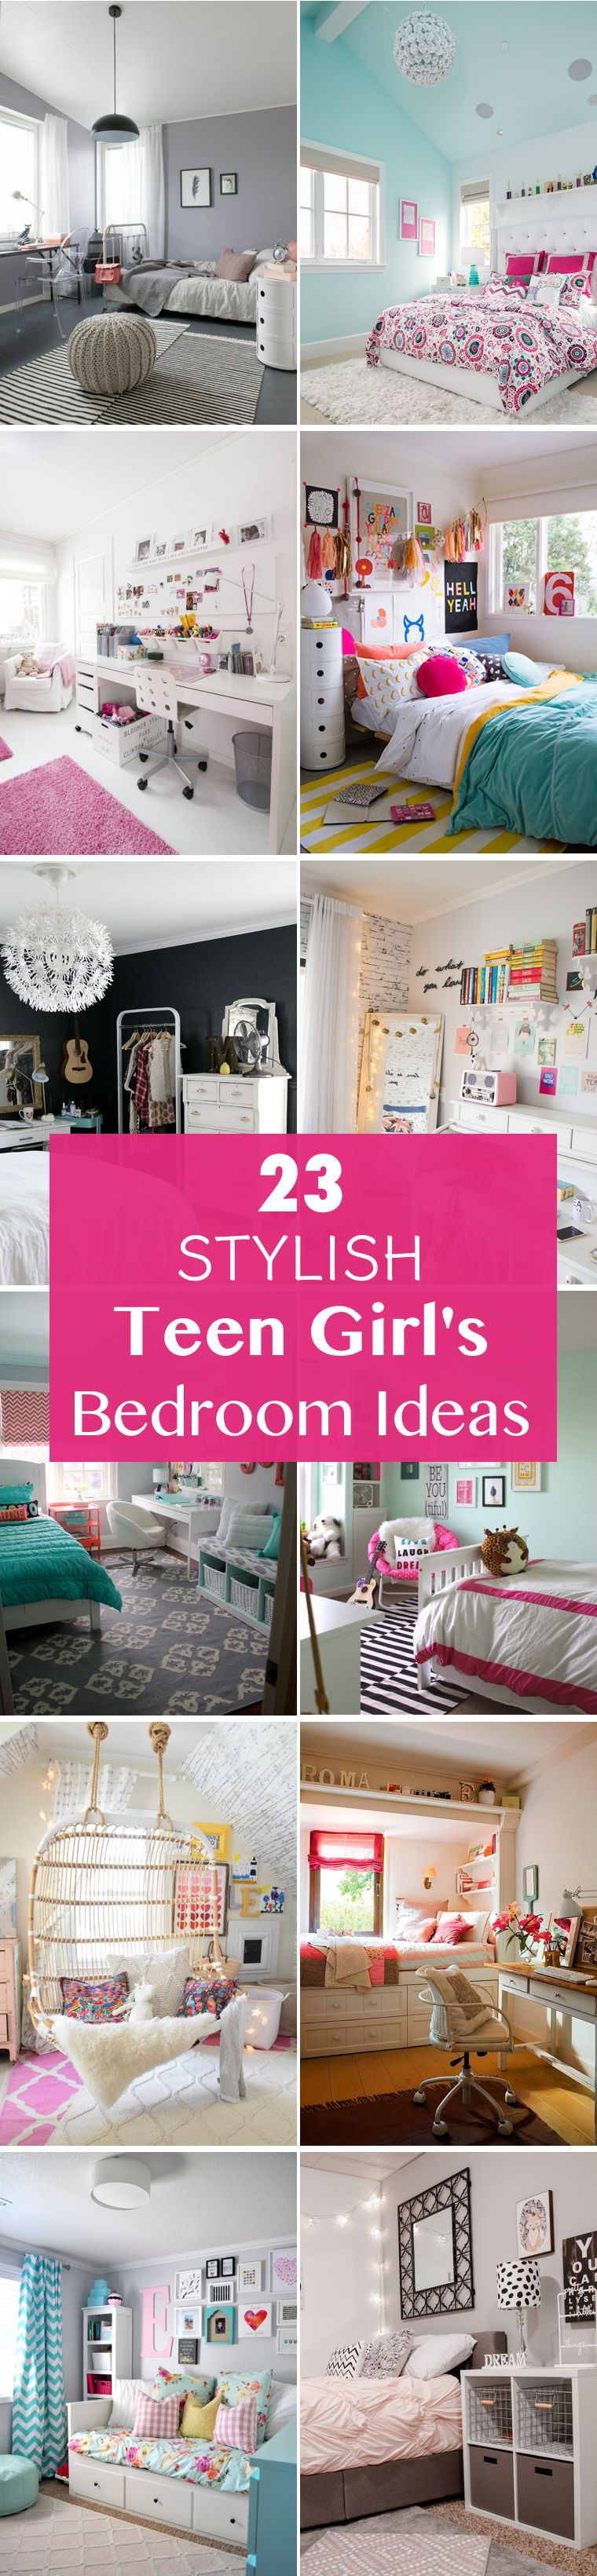 Transform Your Girlu0027s Bedroom Into A Space That Reflects Her Unique Teen  Style With These 23 Stylish Teen Girlu0027s Bedroom Ideas